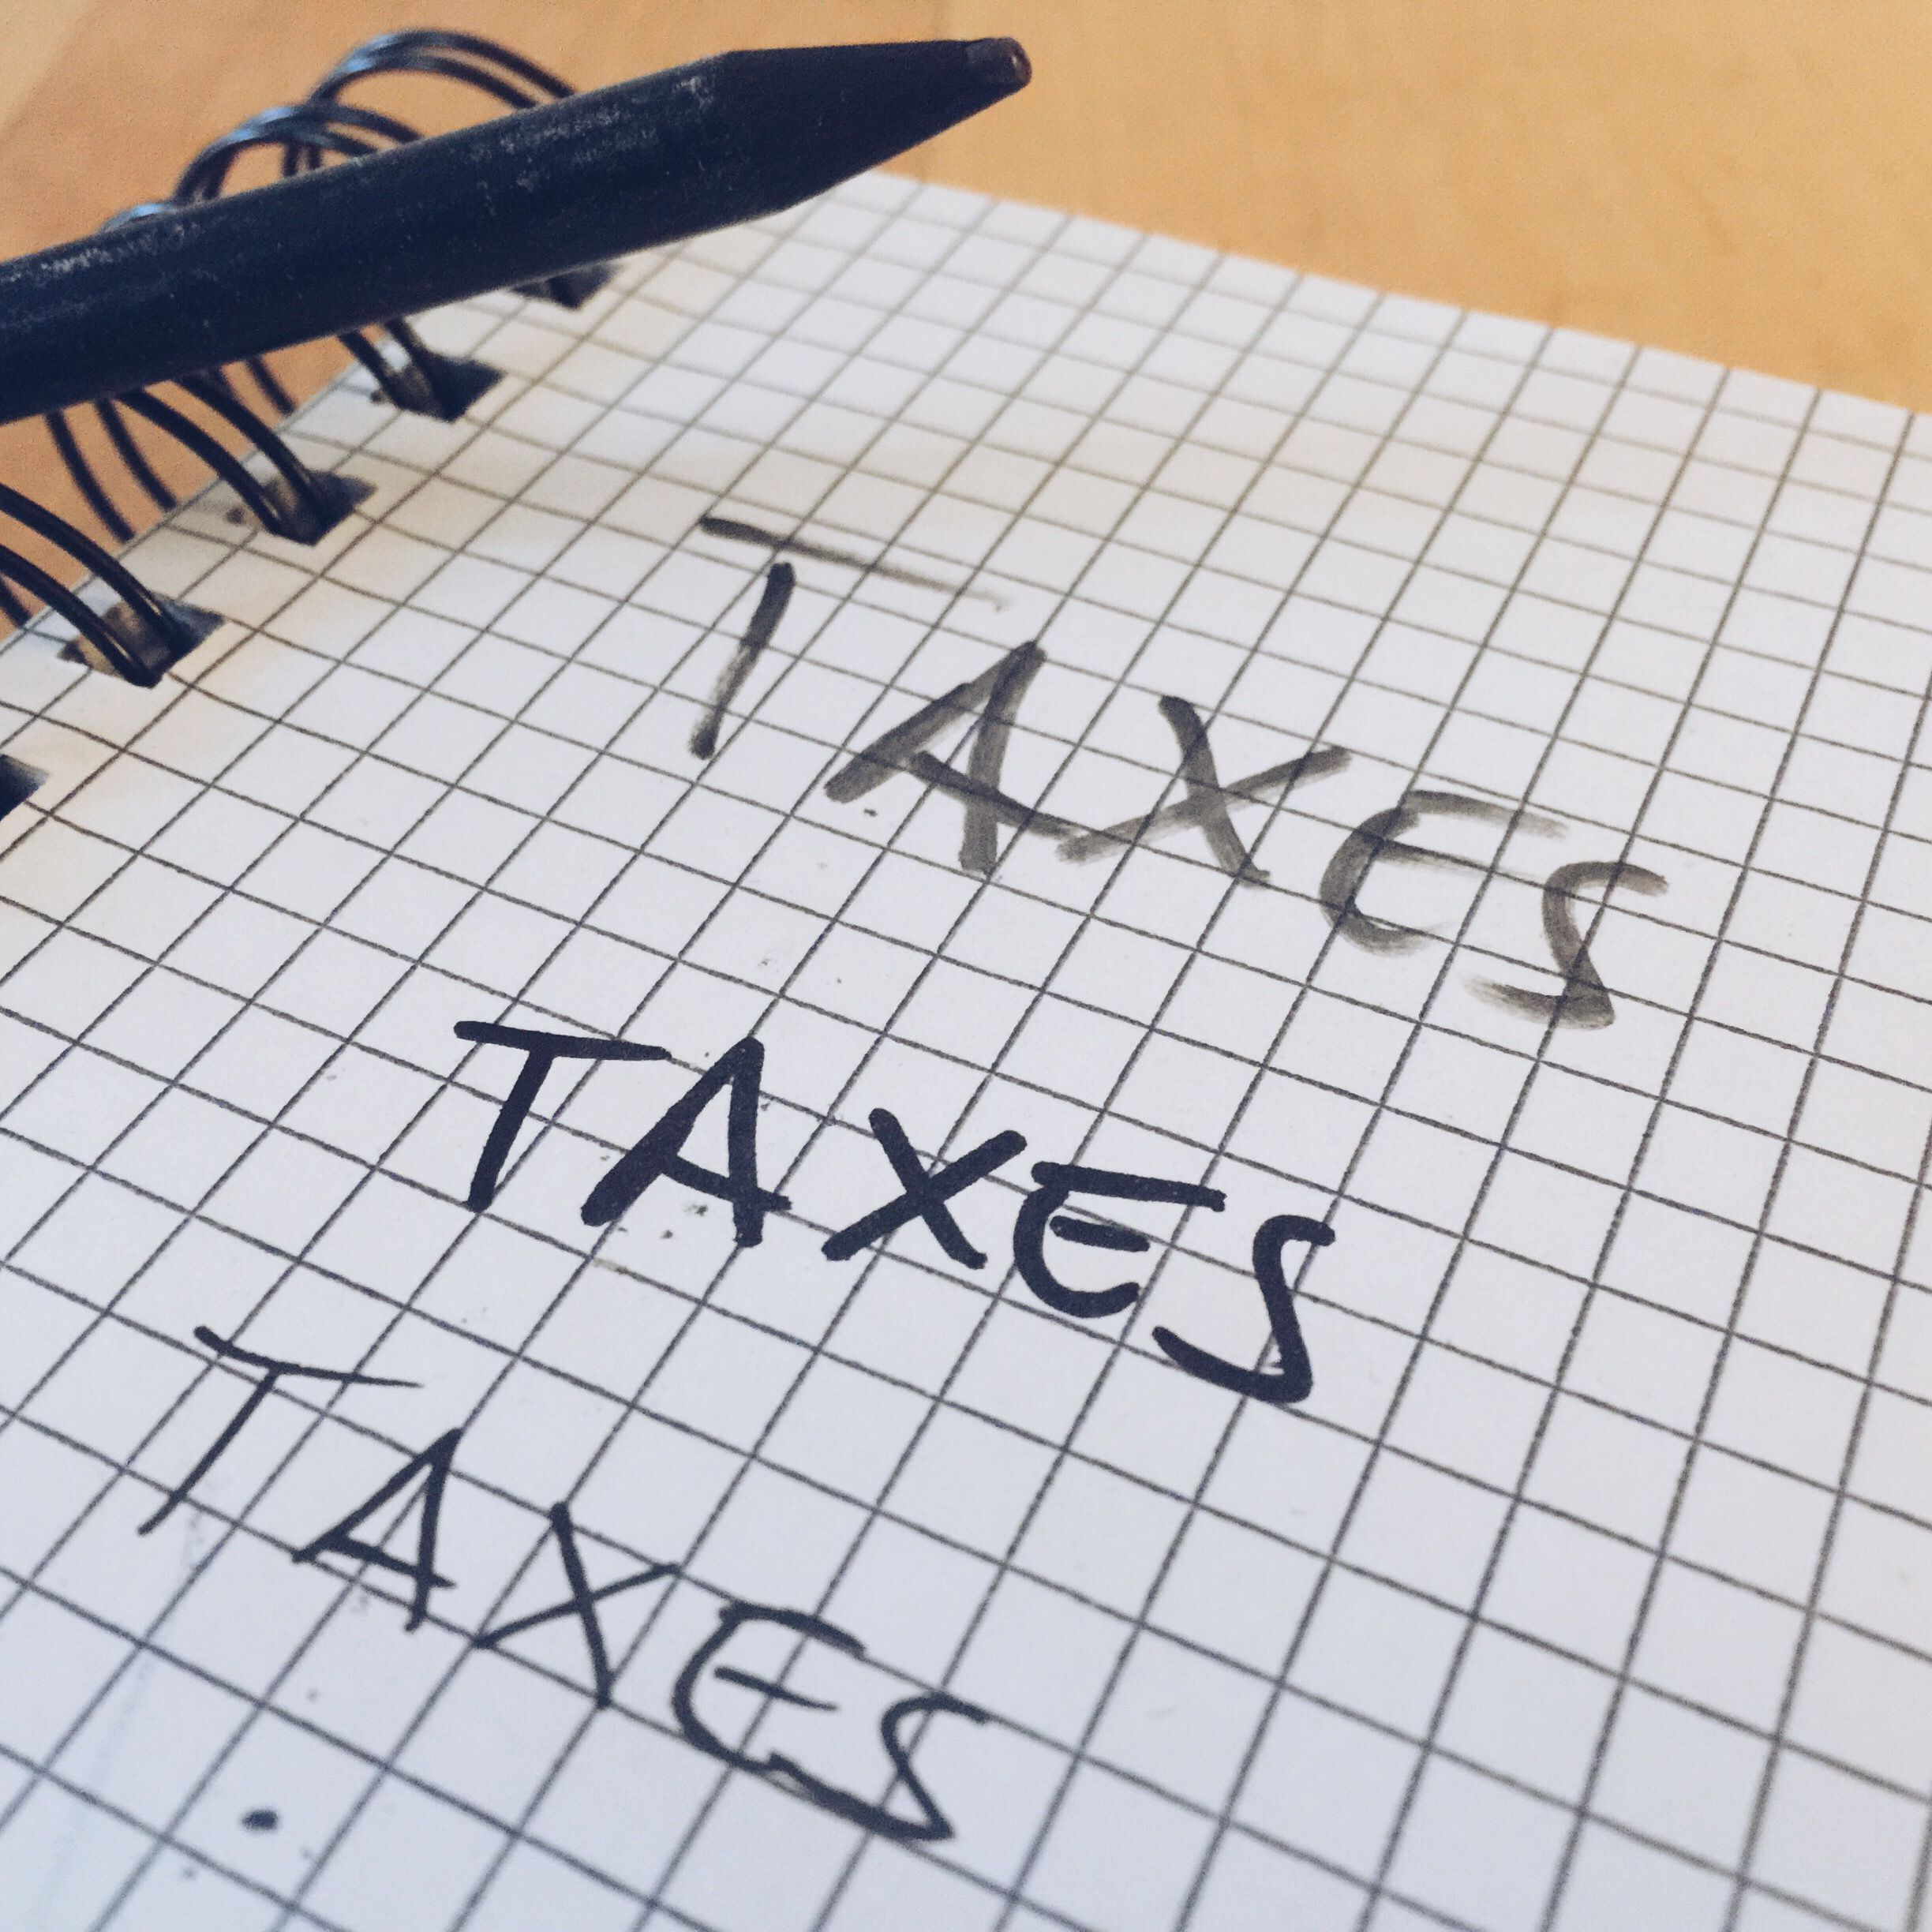 What Business Taxes Can I Deduct as a Business Expense?